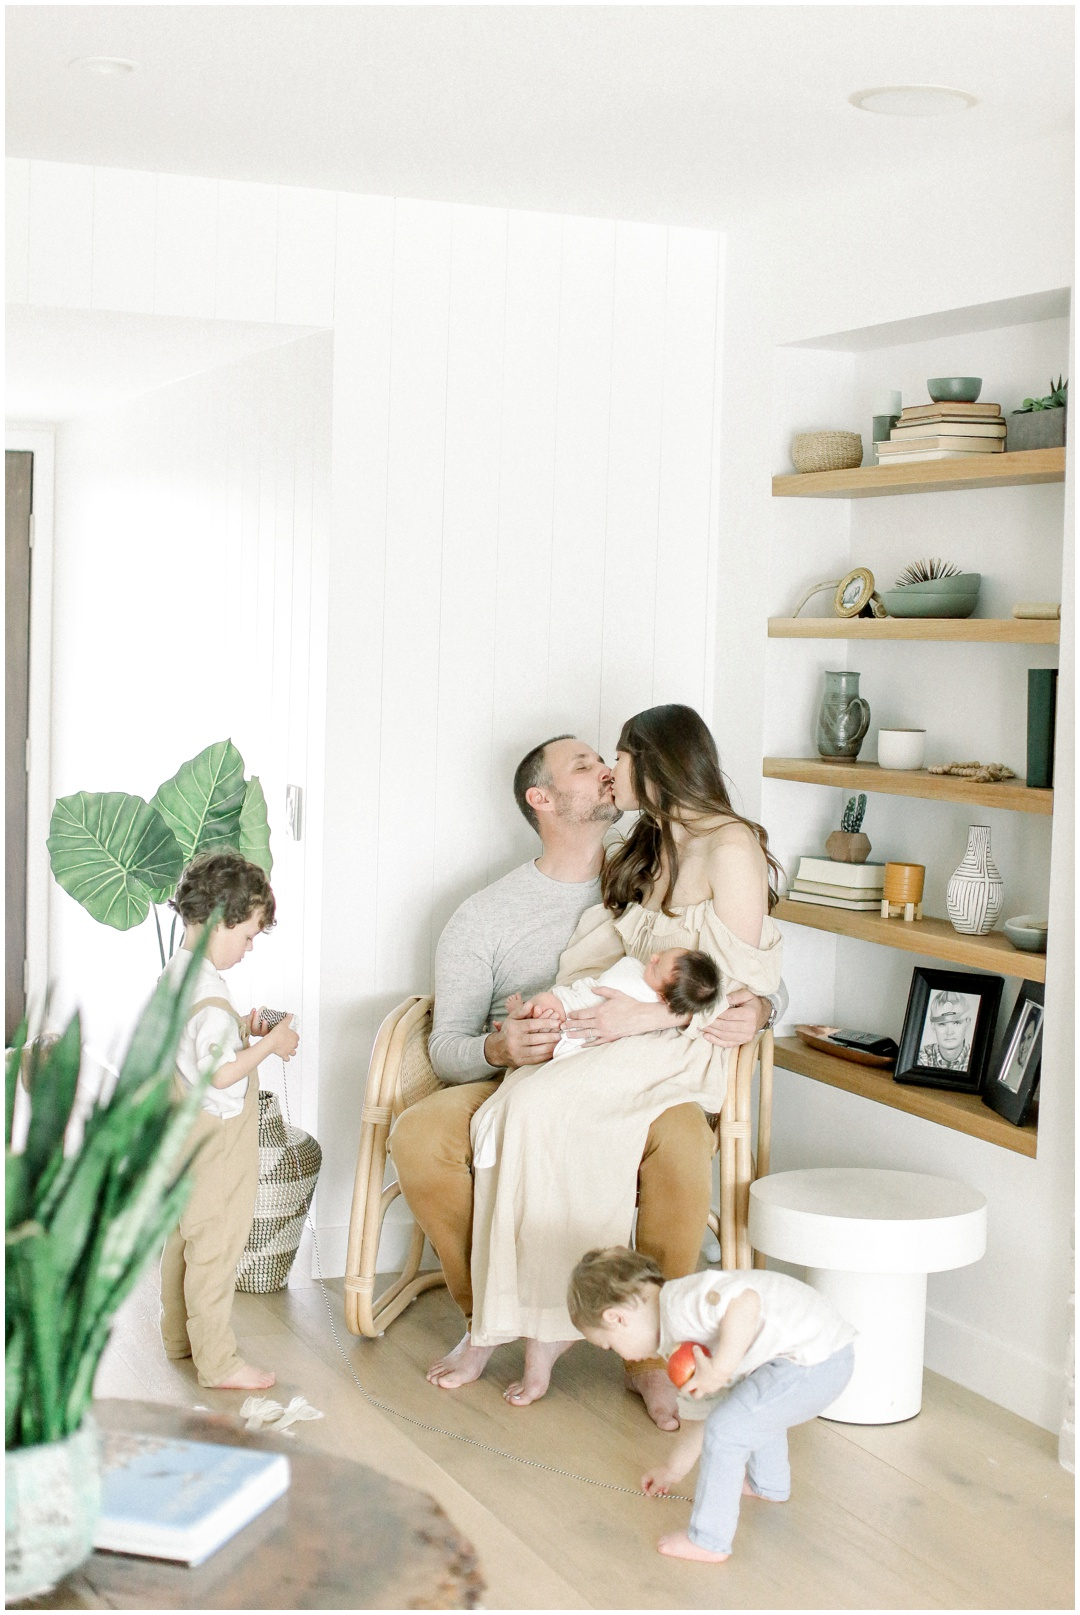 Newport_Beach_Newborn_Light_Airy_Natural_Photographer_Newport_Beach_In-Home_Photographer_Orange_County_Family_Photographer_Cori_Kleckner_Photography_Huntington_Beach_Photographer_Family_OC_Newborn_April_Levins_Newborn_Family__3293.jpg